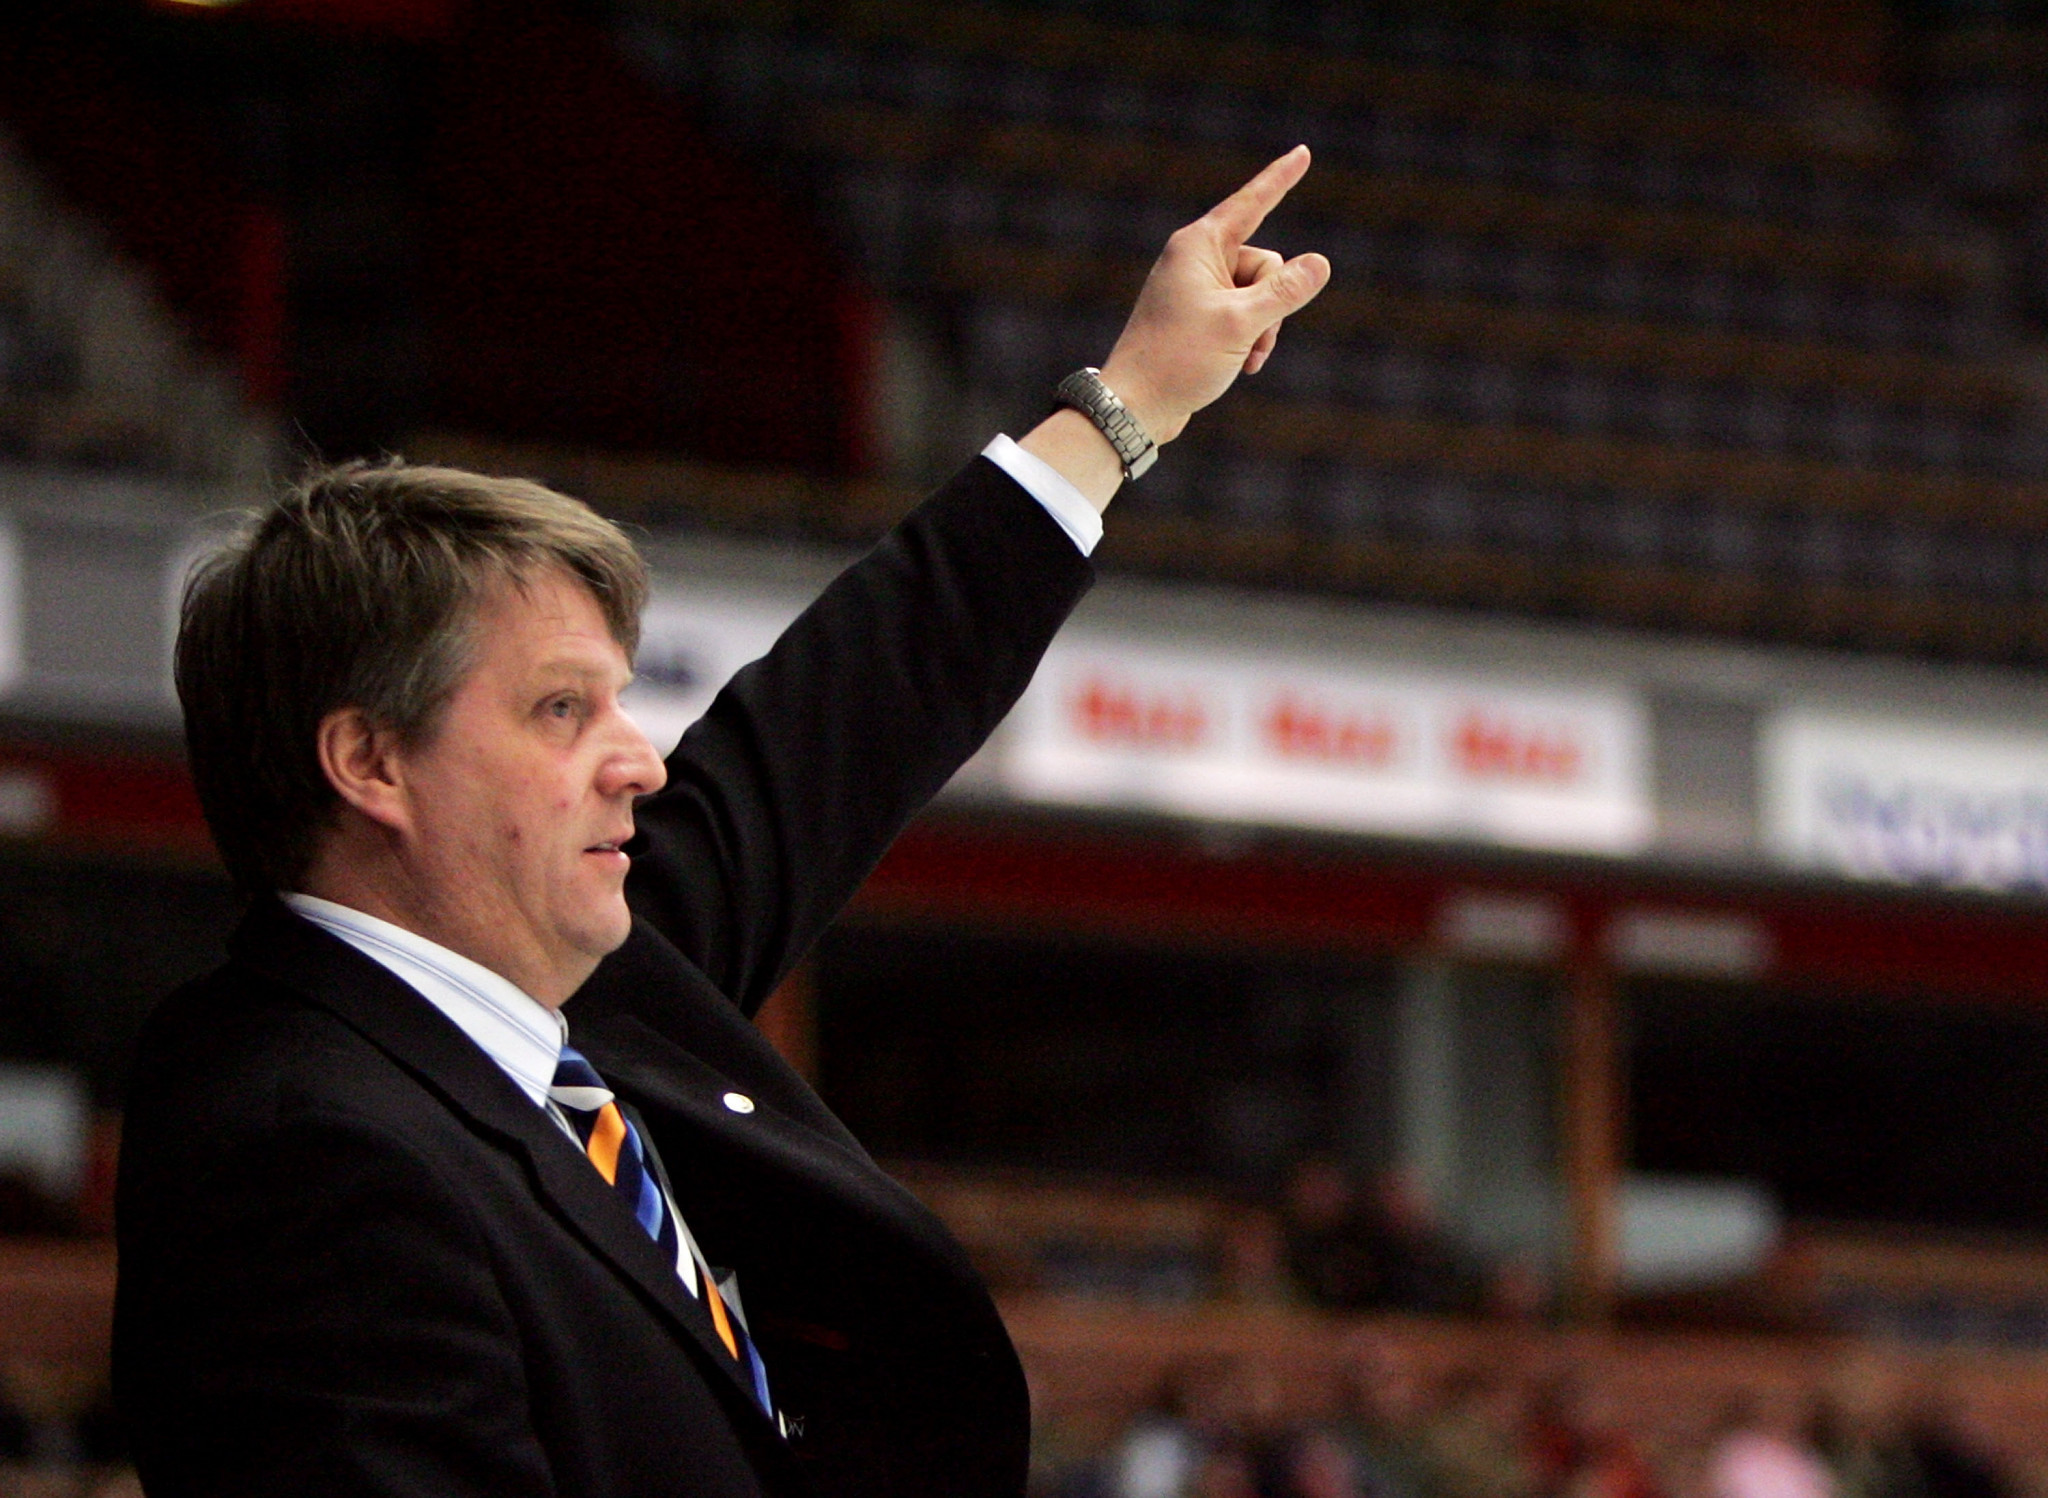 Elander named head coach of Danish women's ice hockey team